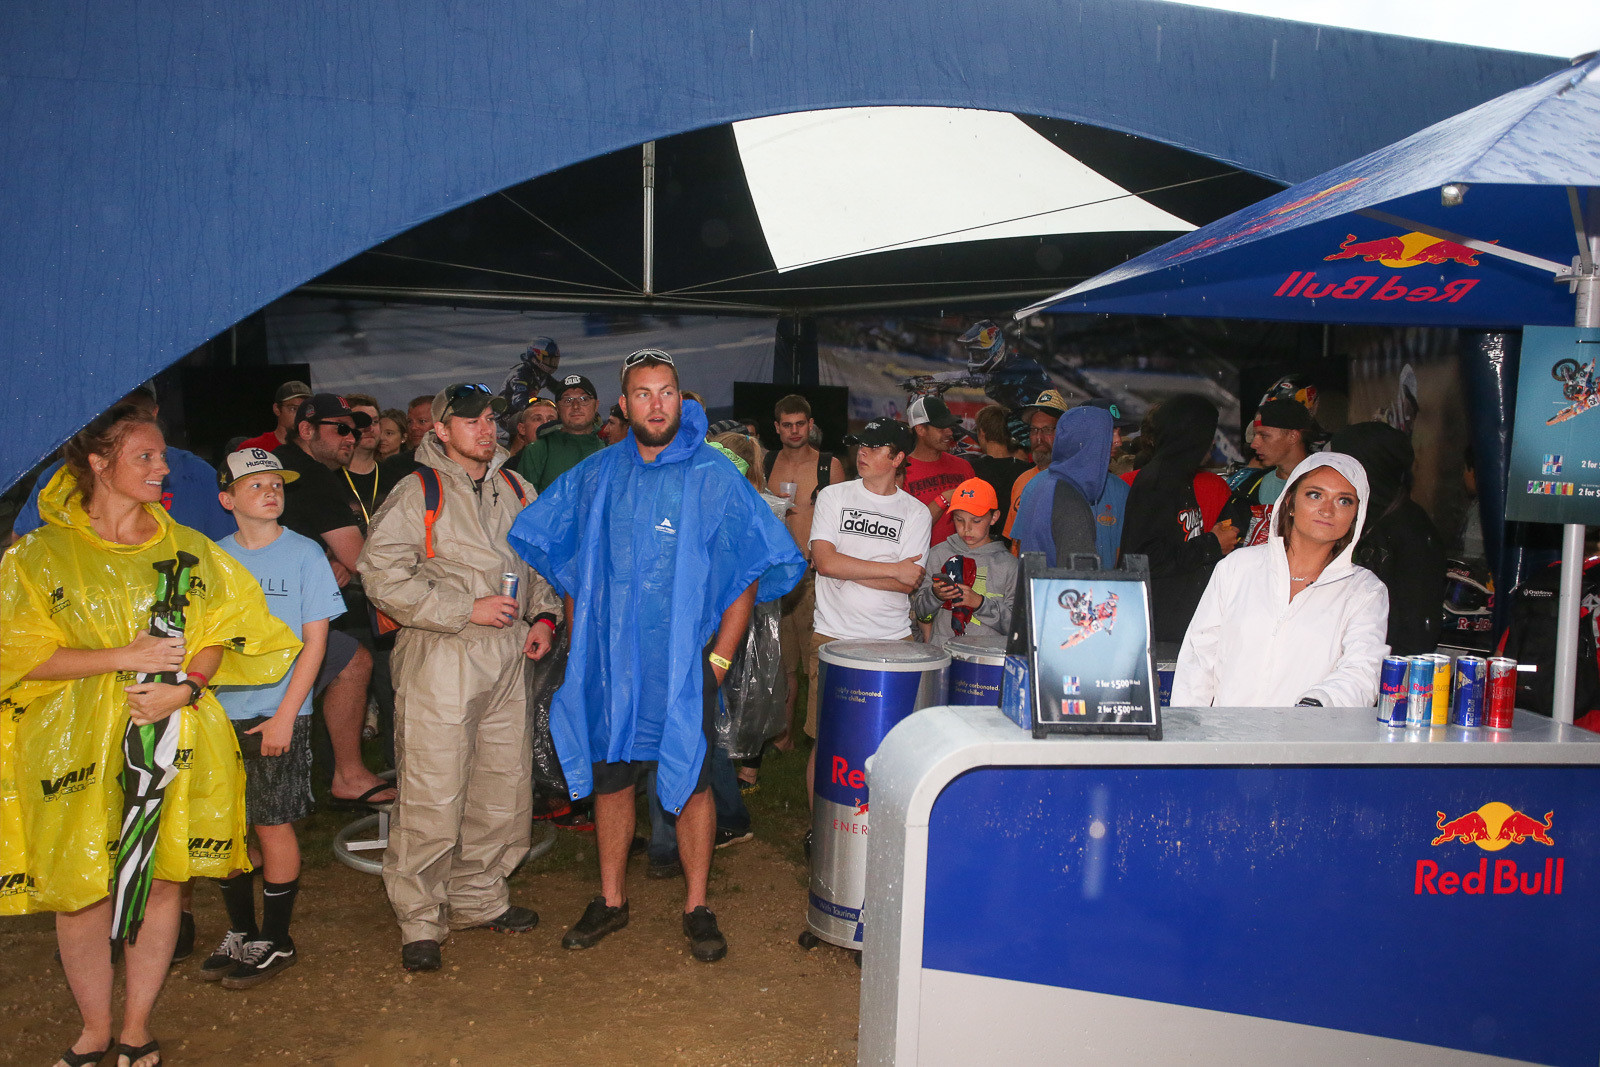 When the rain started coming down, the Red Bull tent suddenly got very popular.